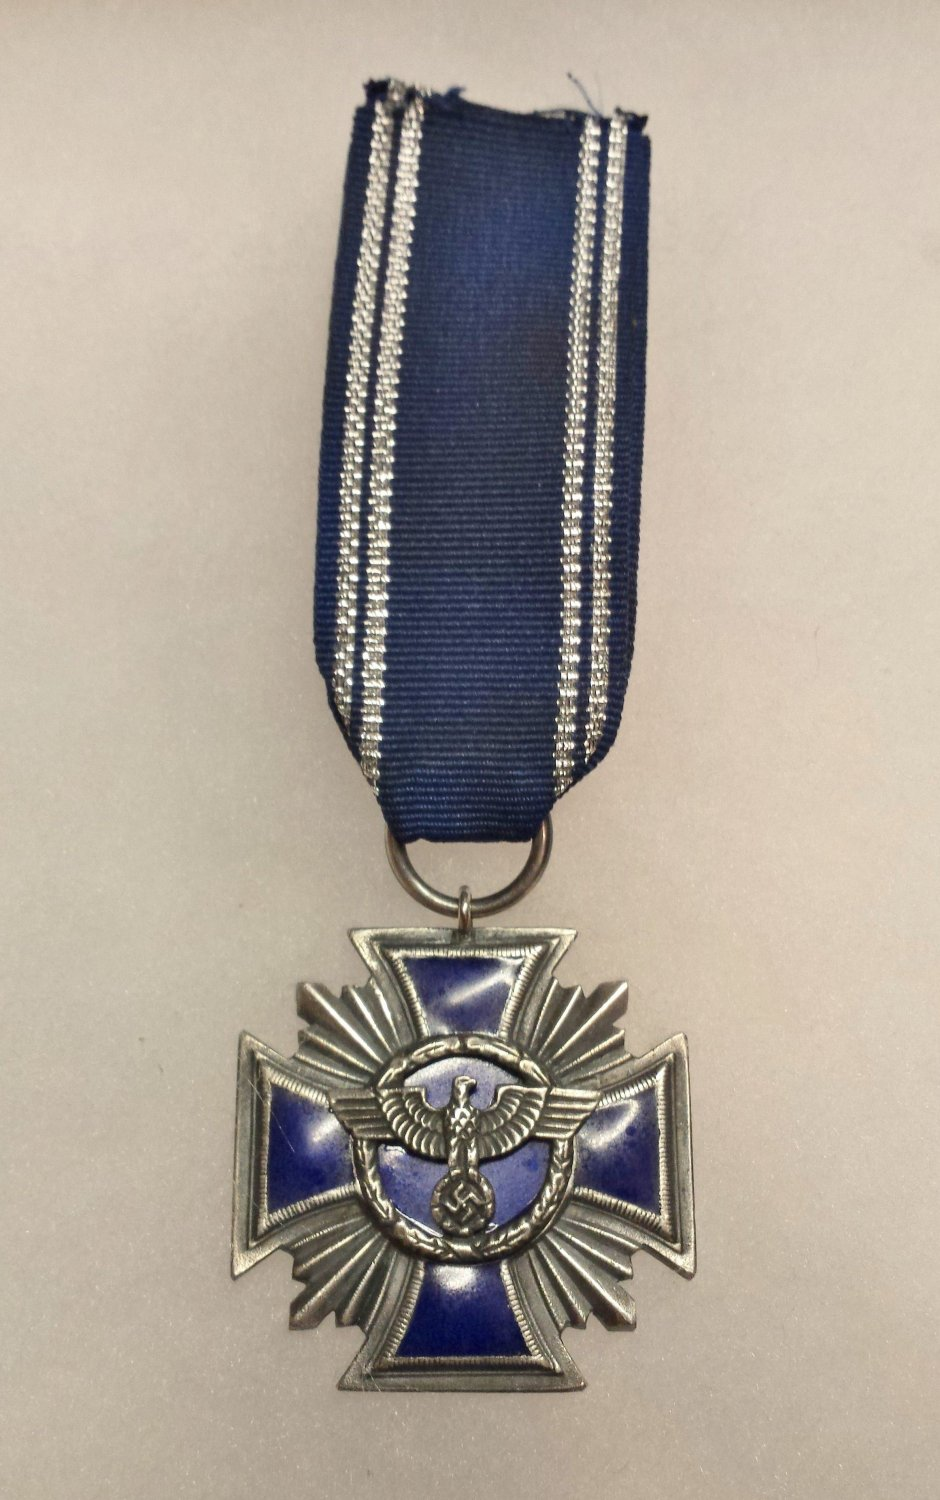 WWII GERMAN SA LONG SERVICE MEDAL - 15 YEAR